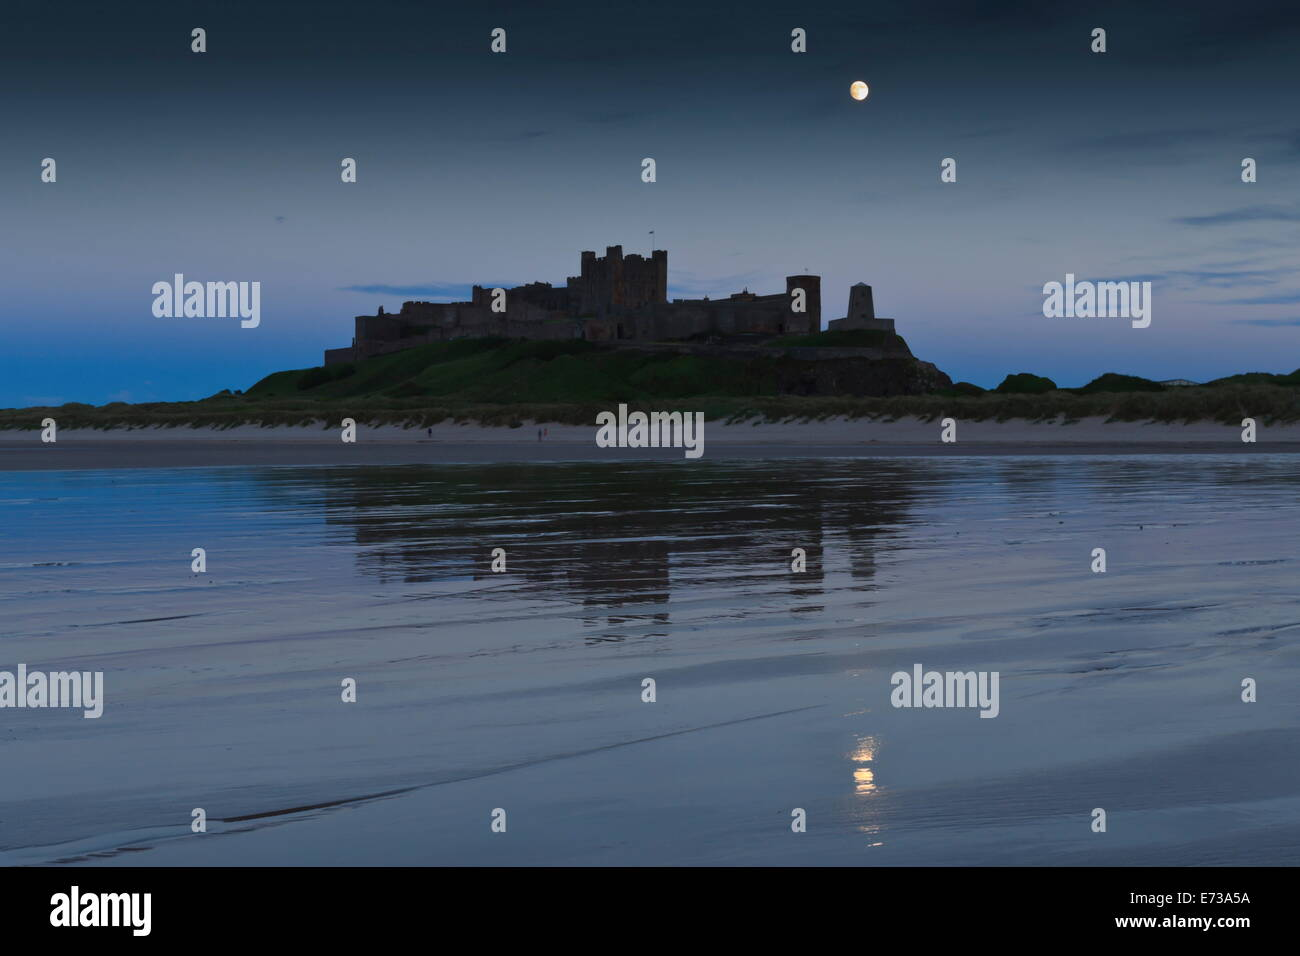 Bamburgh Castle under a full moon at dusk in summer, Bamburgh, Northumberland, England, United Kingdom, Europe - Stock Image